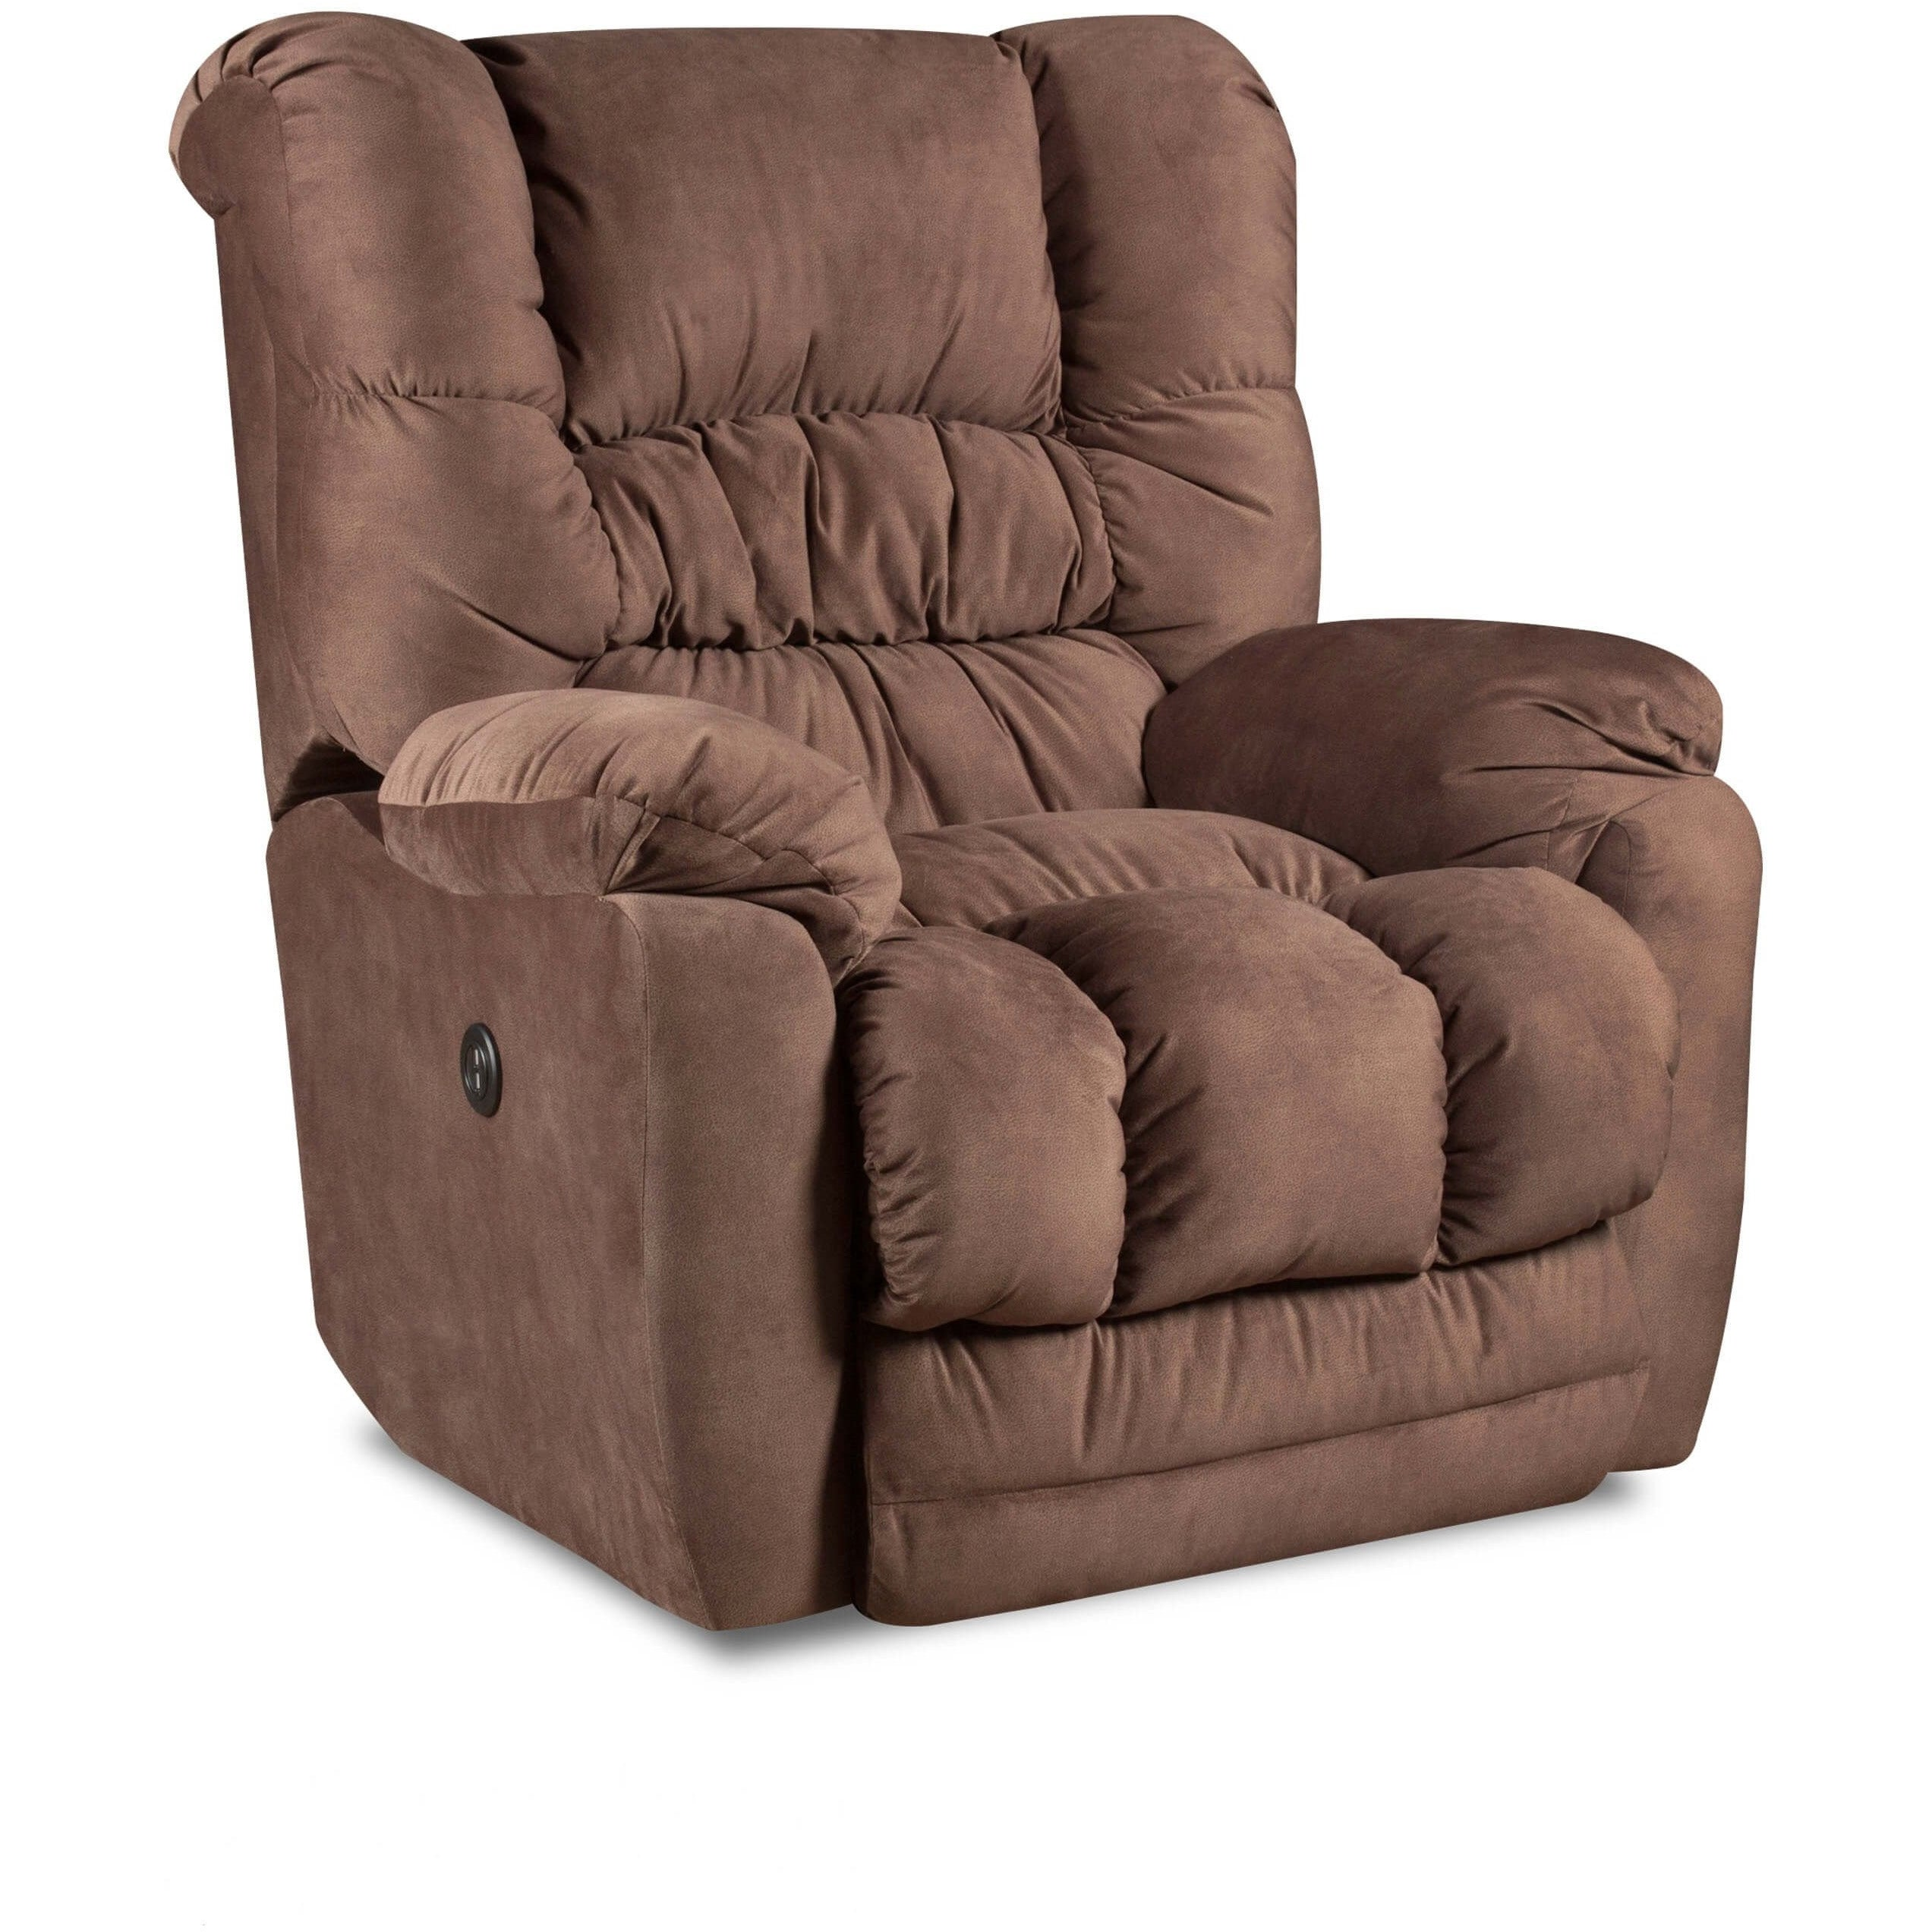 Recliner - Tombstone Antler Collection - Casa Muebles